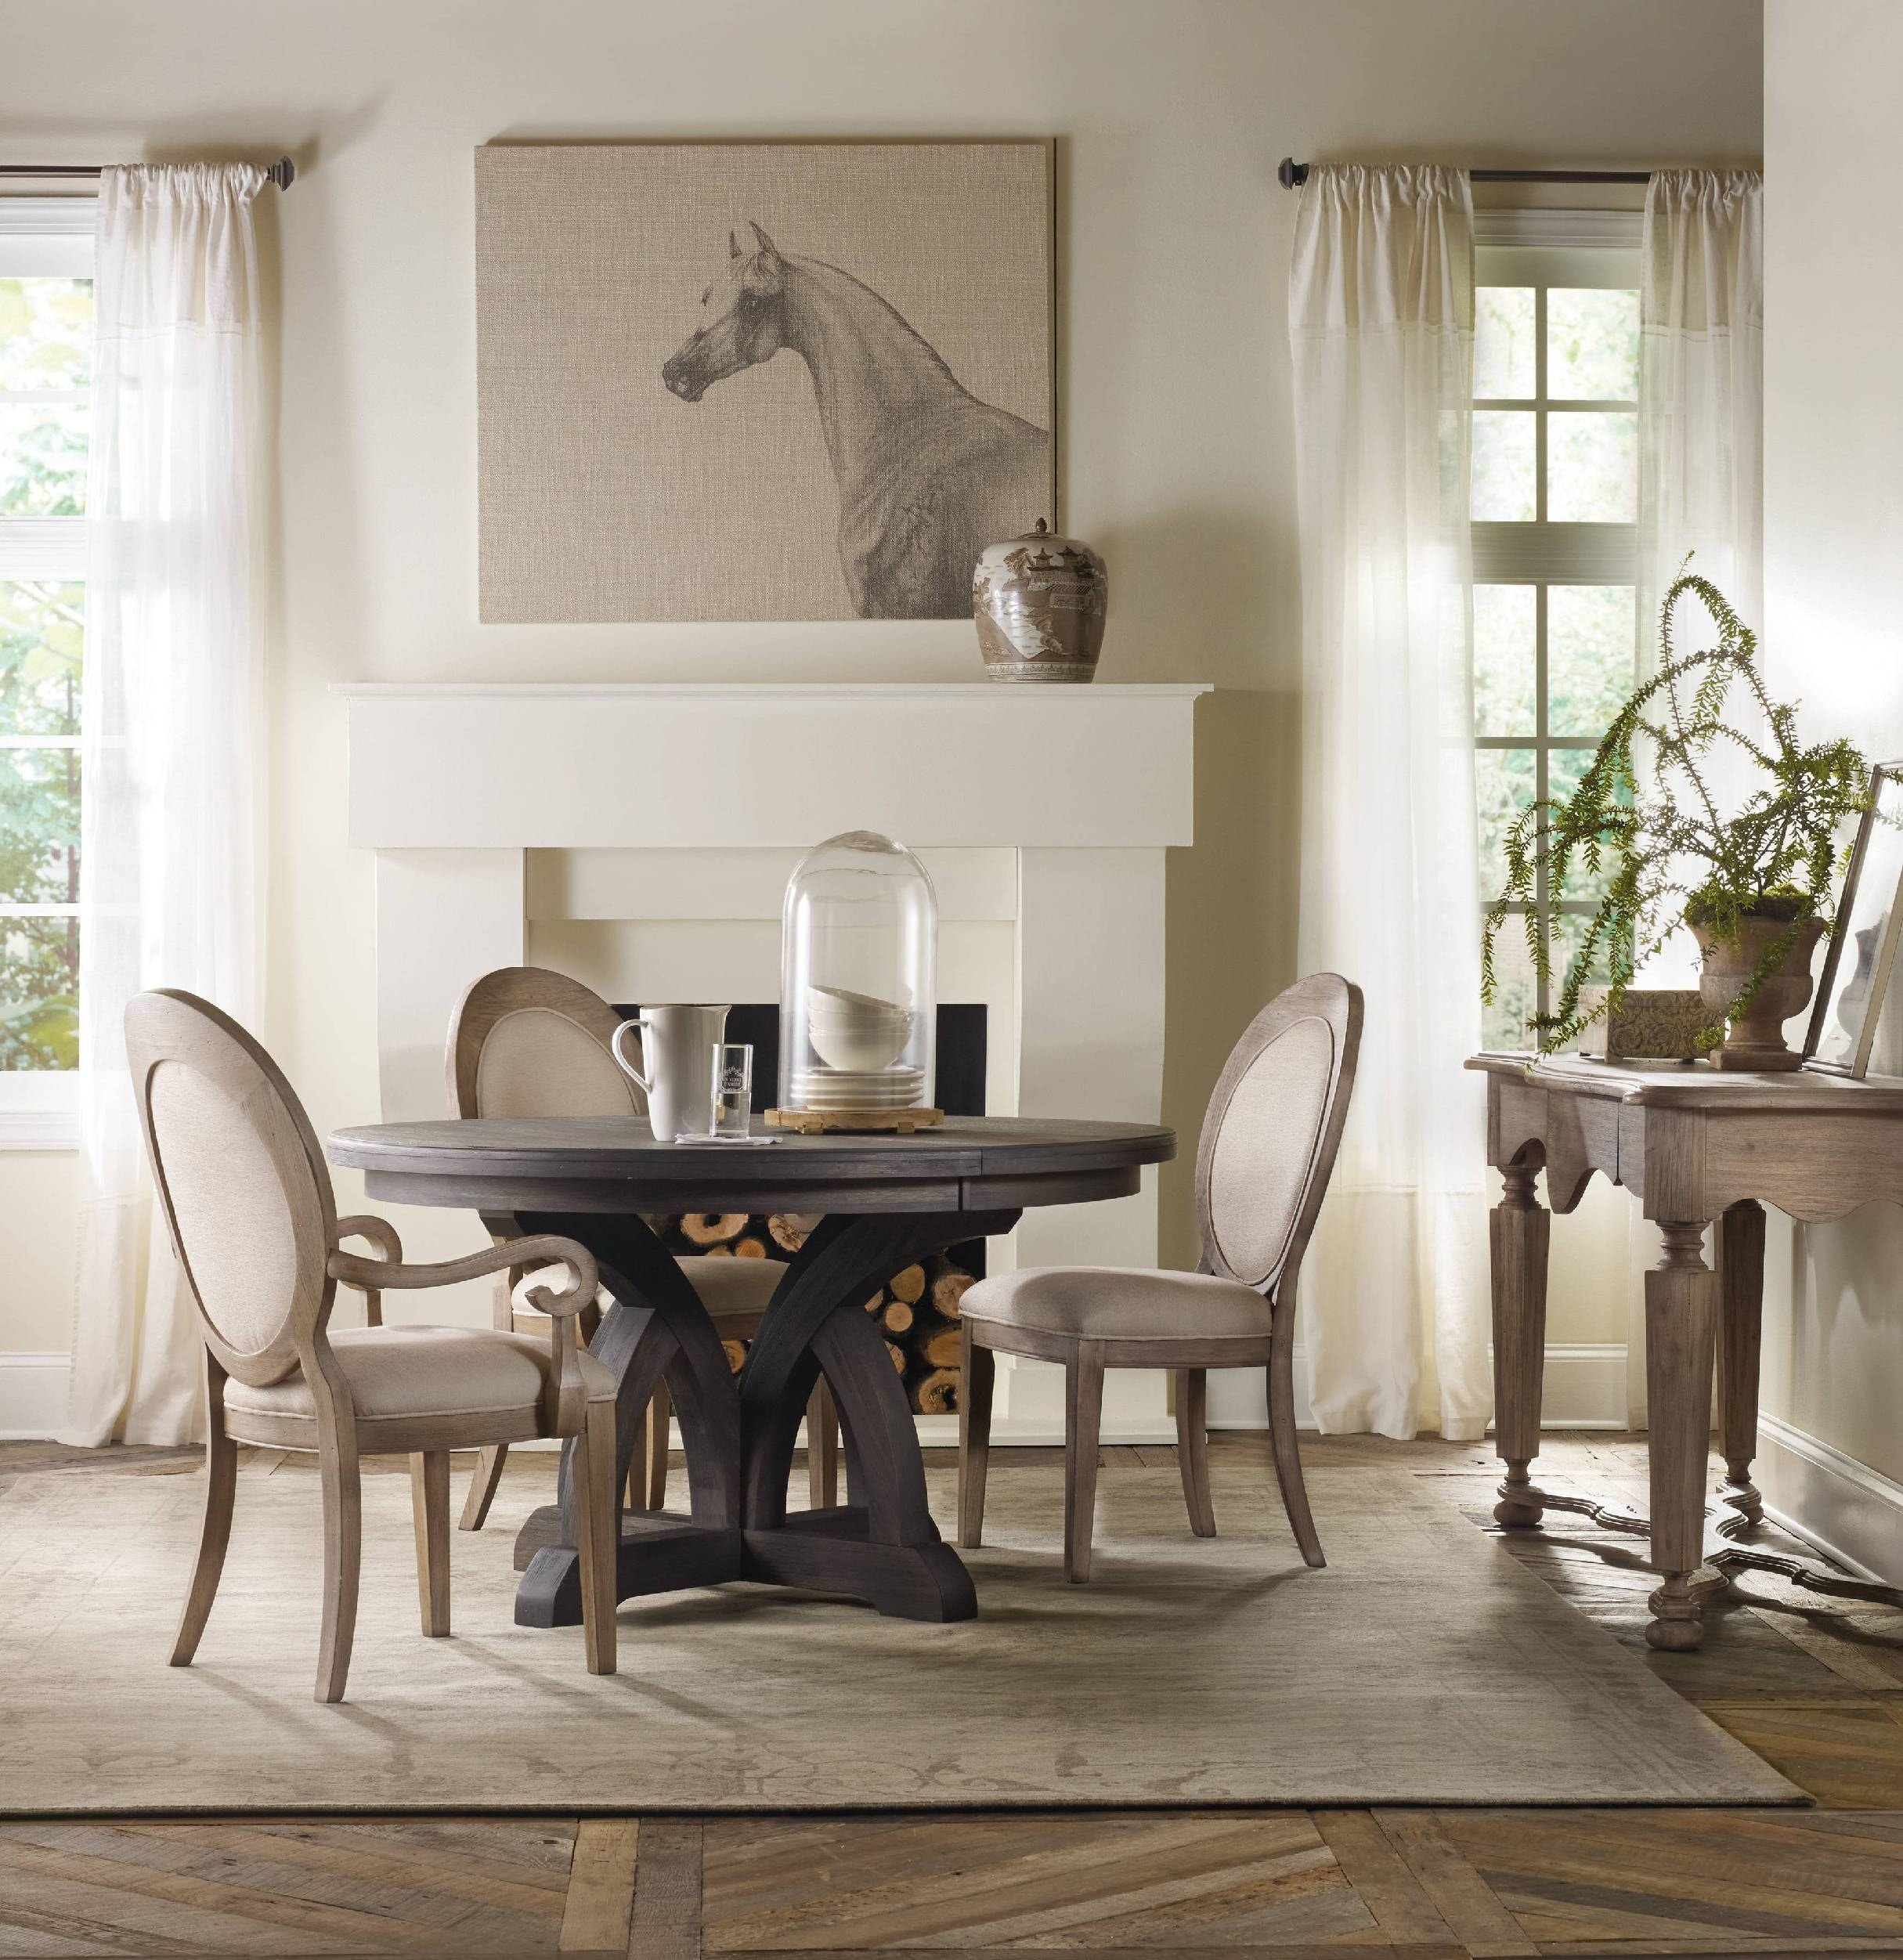 Hooker Furniture Corsica Dark Round Dining Table W/1 18in Leaf 5280 75203